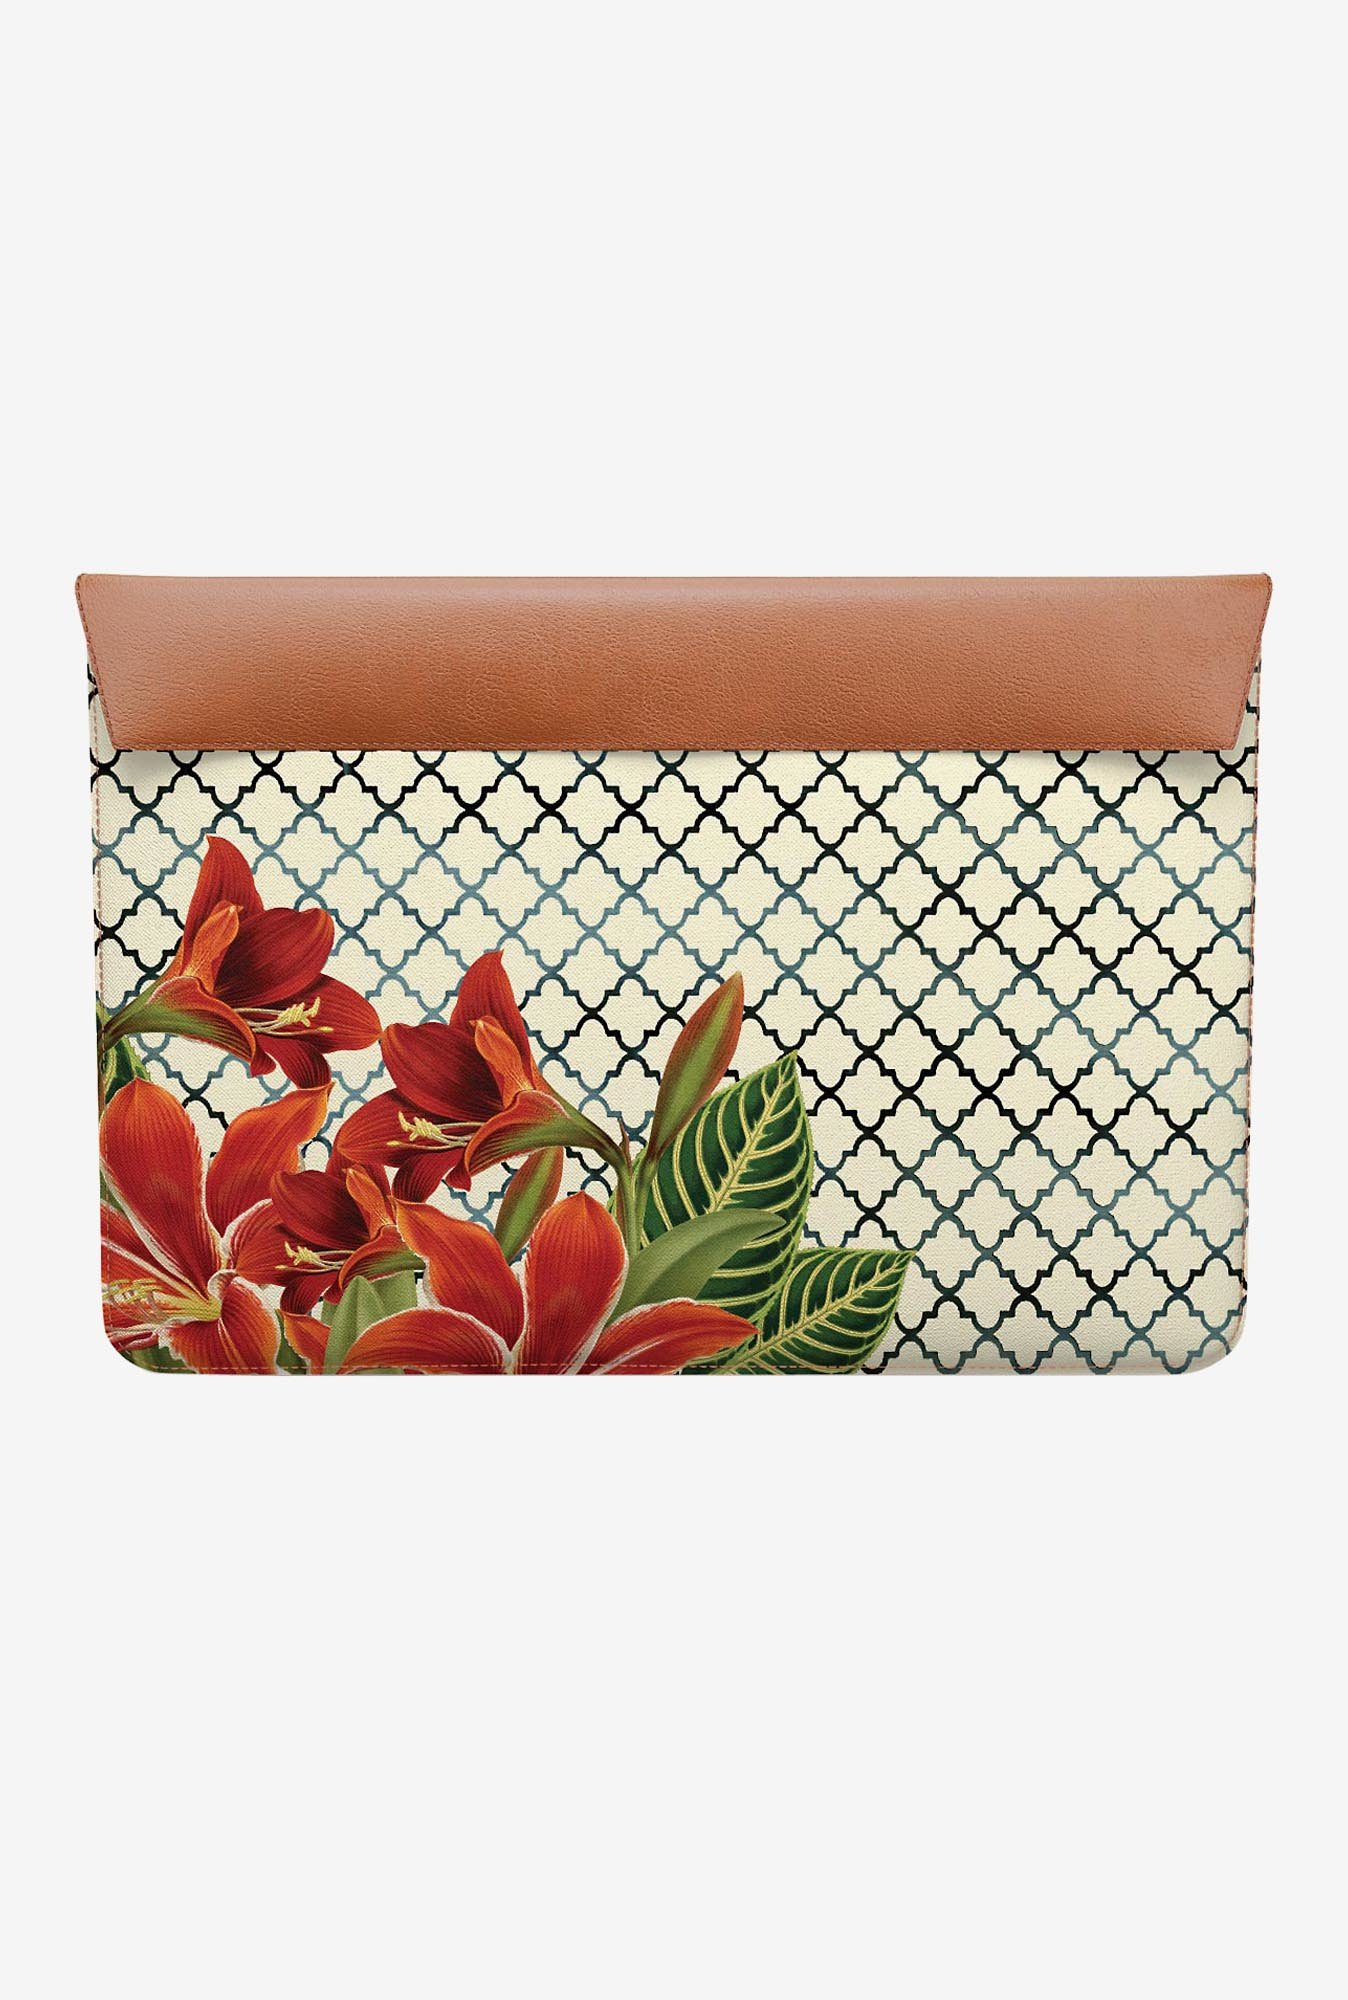 DailyObjects Floral Pattern MacBook Air 13 Envelope Sleeve